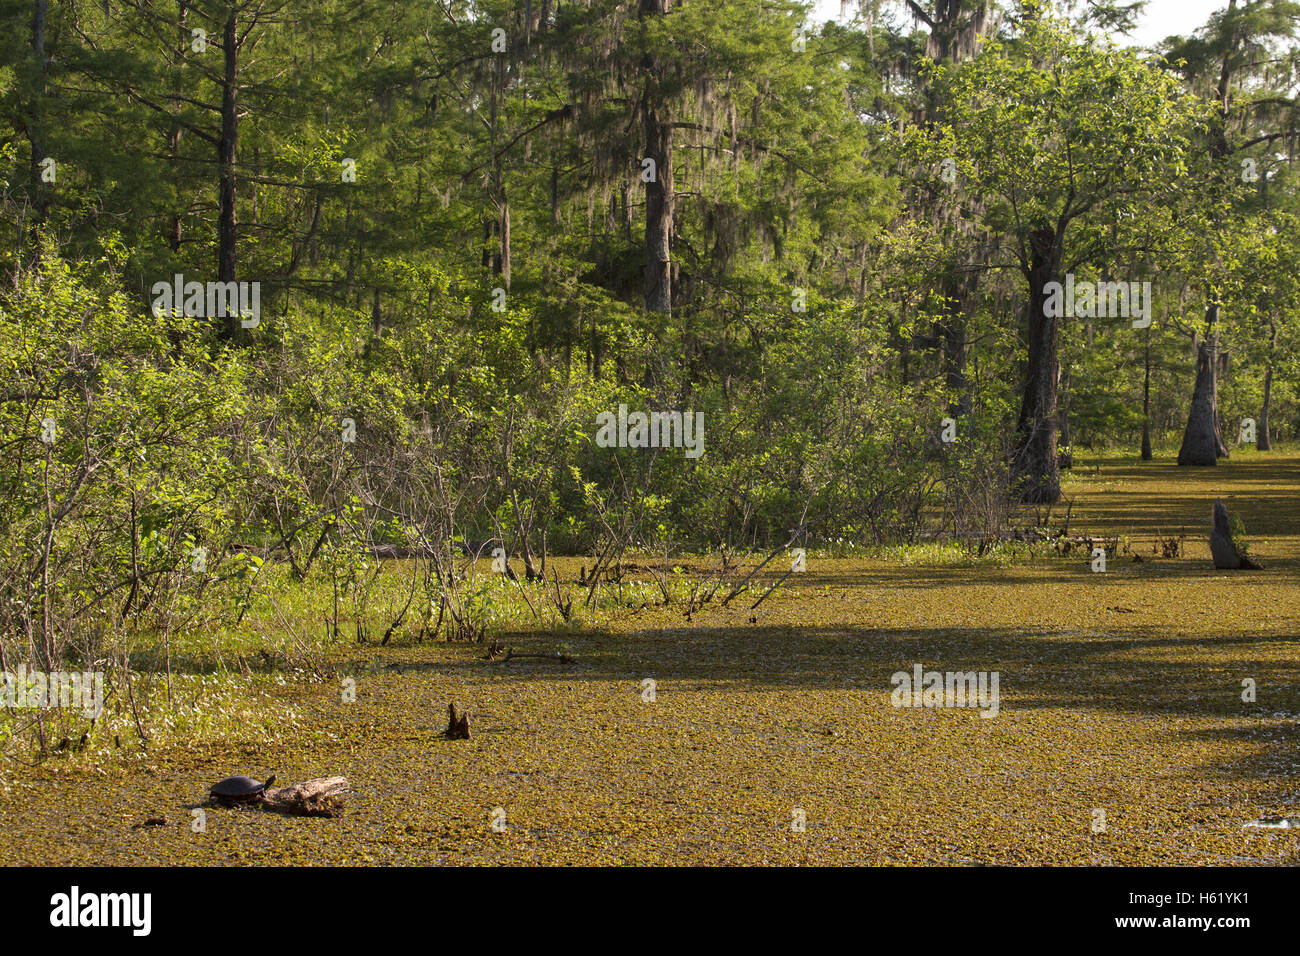 Louisiana bayou, water surface covered by Salvinia, an invasive plant. Turtle in foreground. - Stock Image